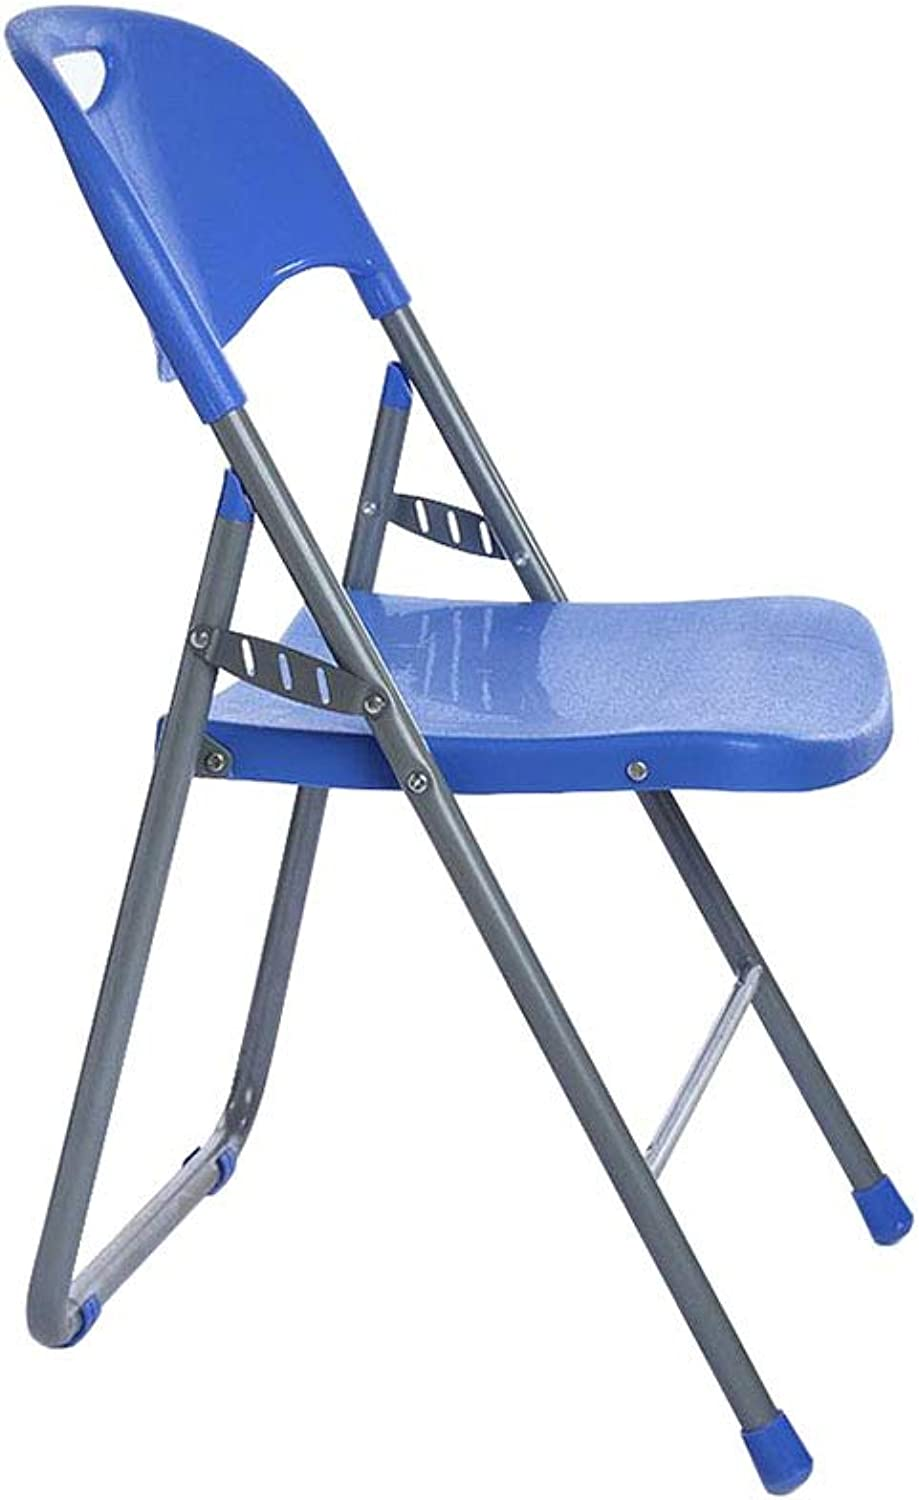 Folding Chair Staff Student Training Office Meeting Desk Chair bluee Padded